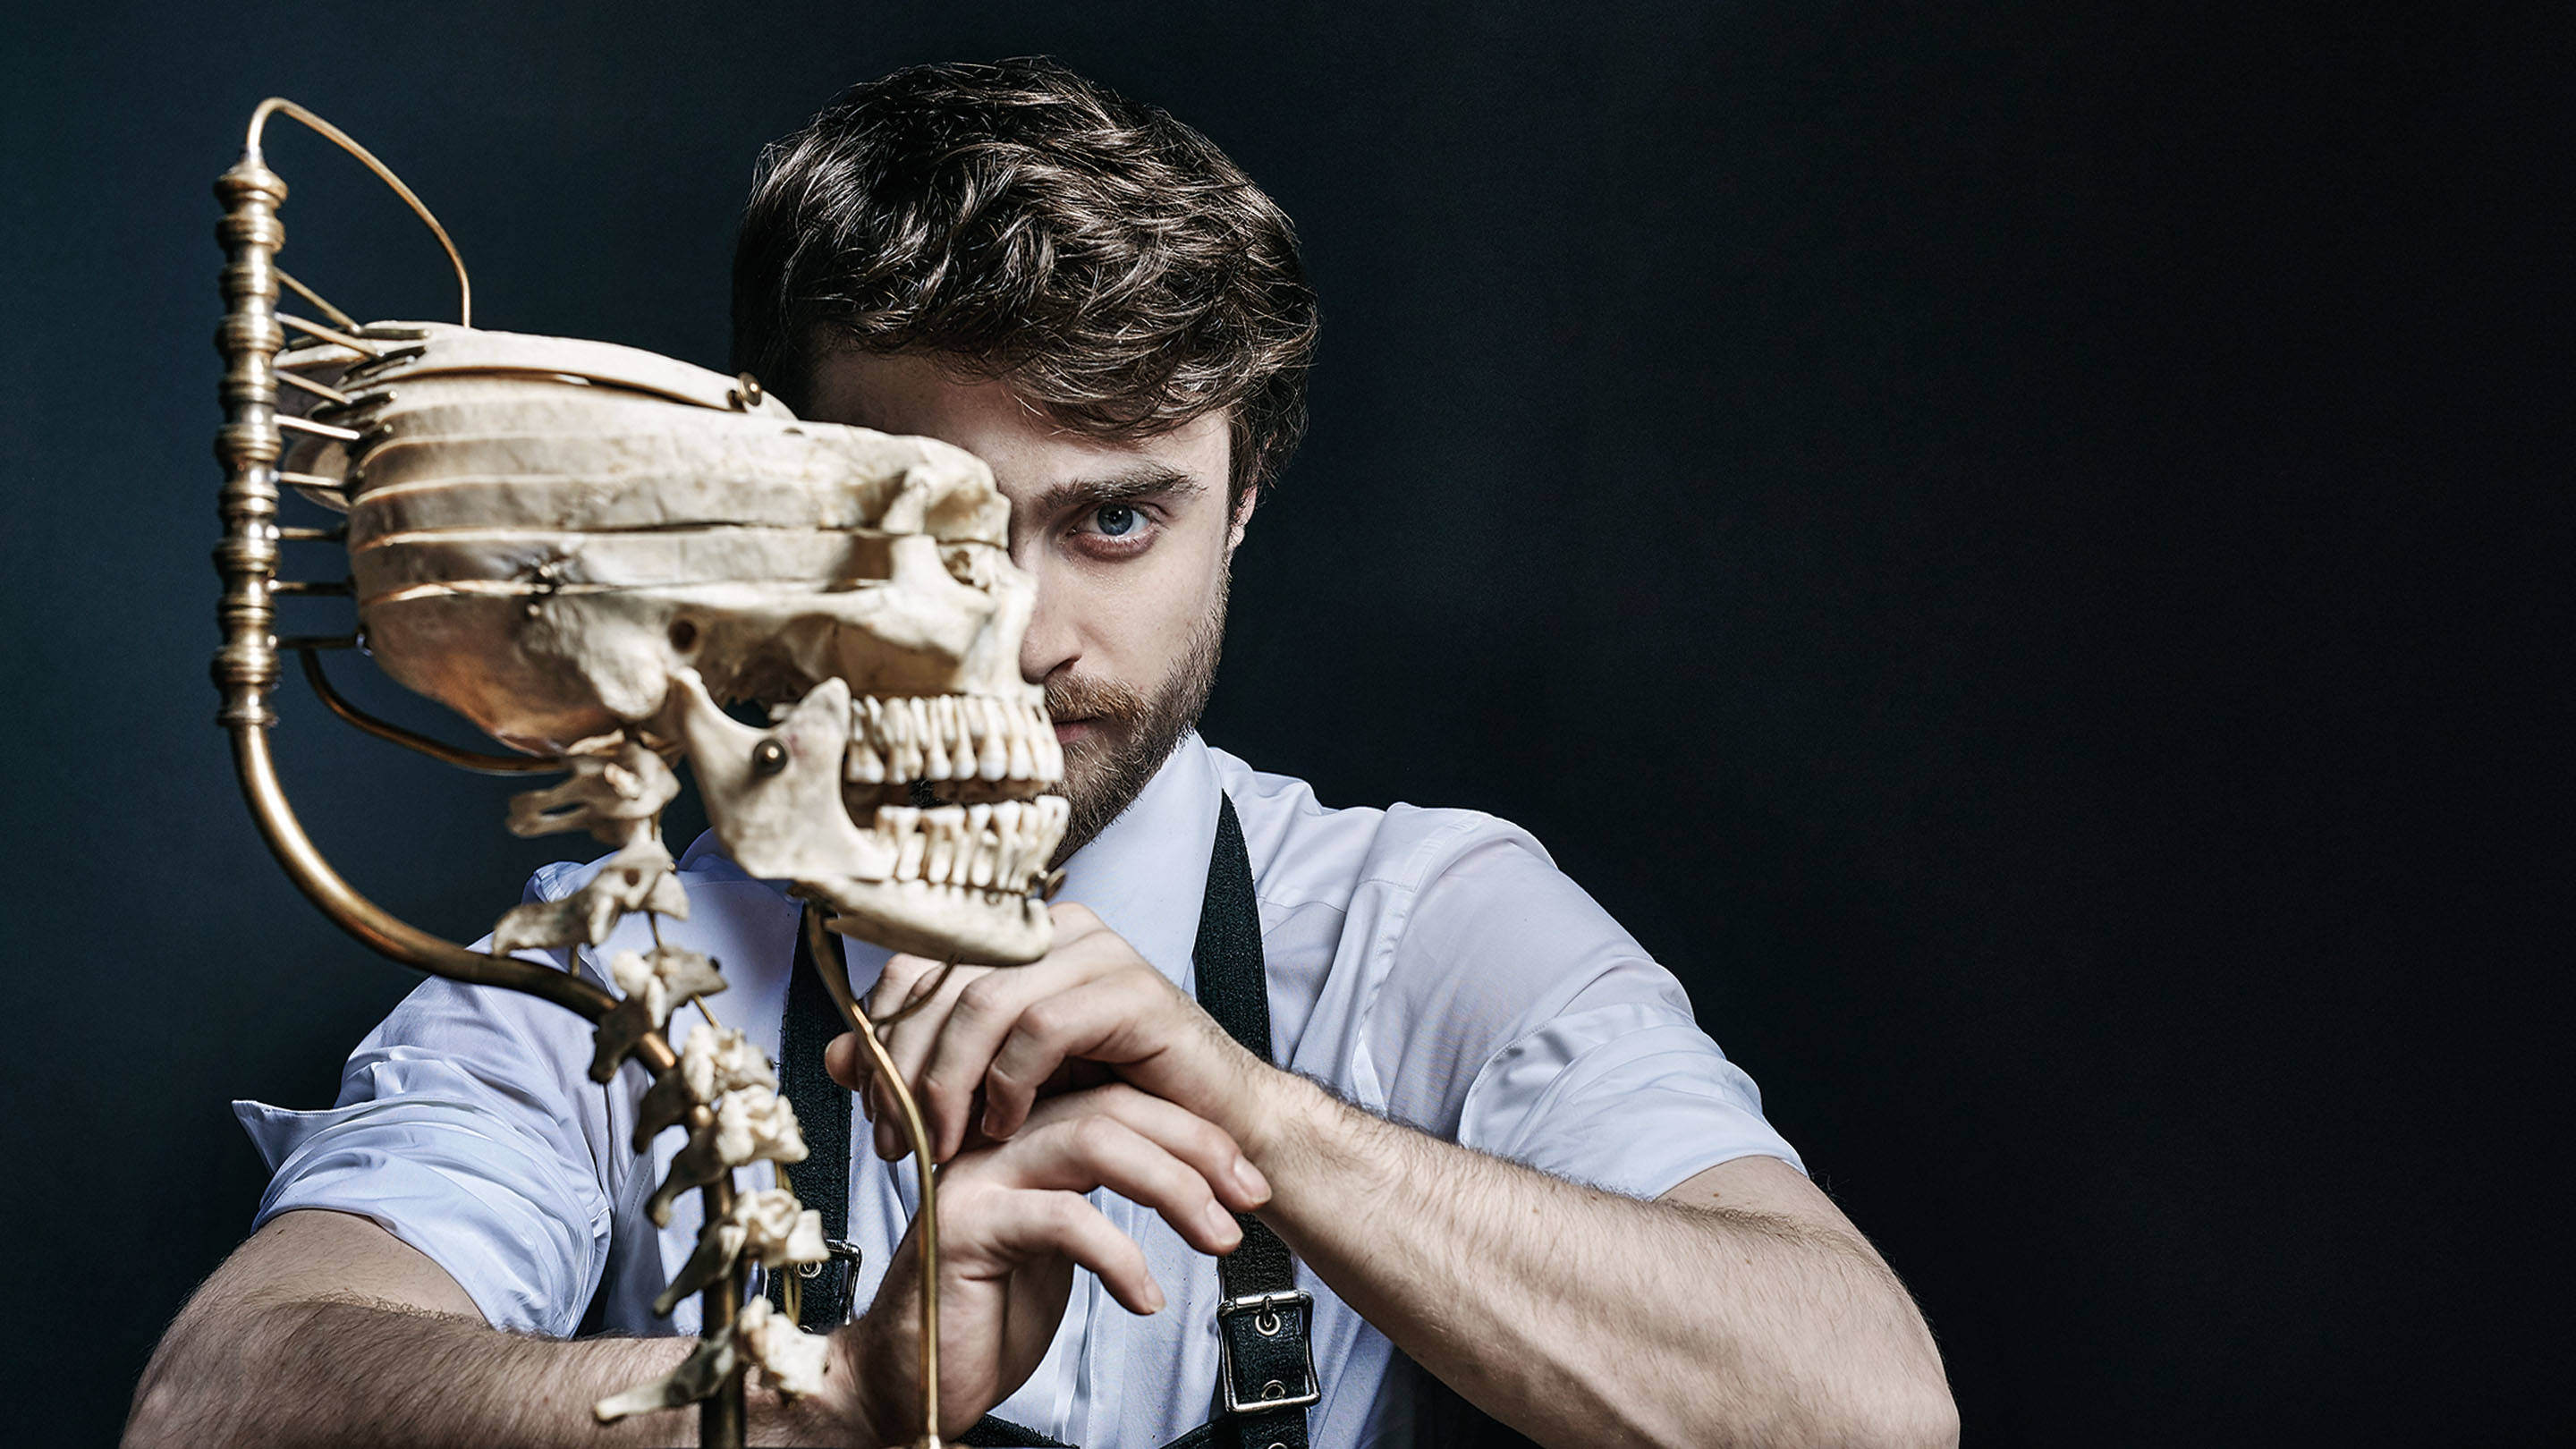 Victor Frankenstein's Daniel Radcliffe for Playboy's 20Q by Gavin Bond